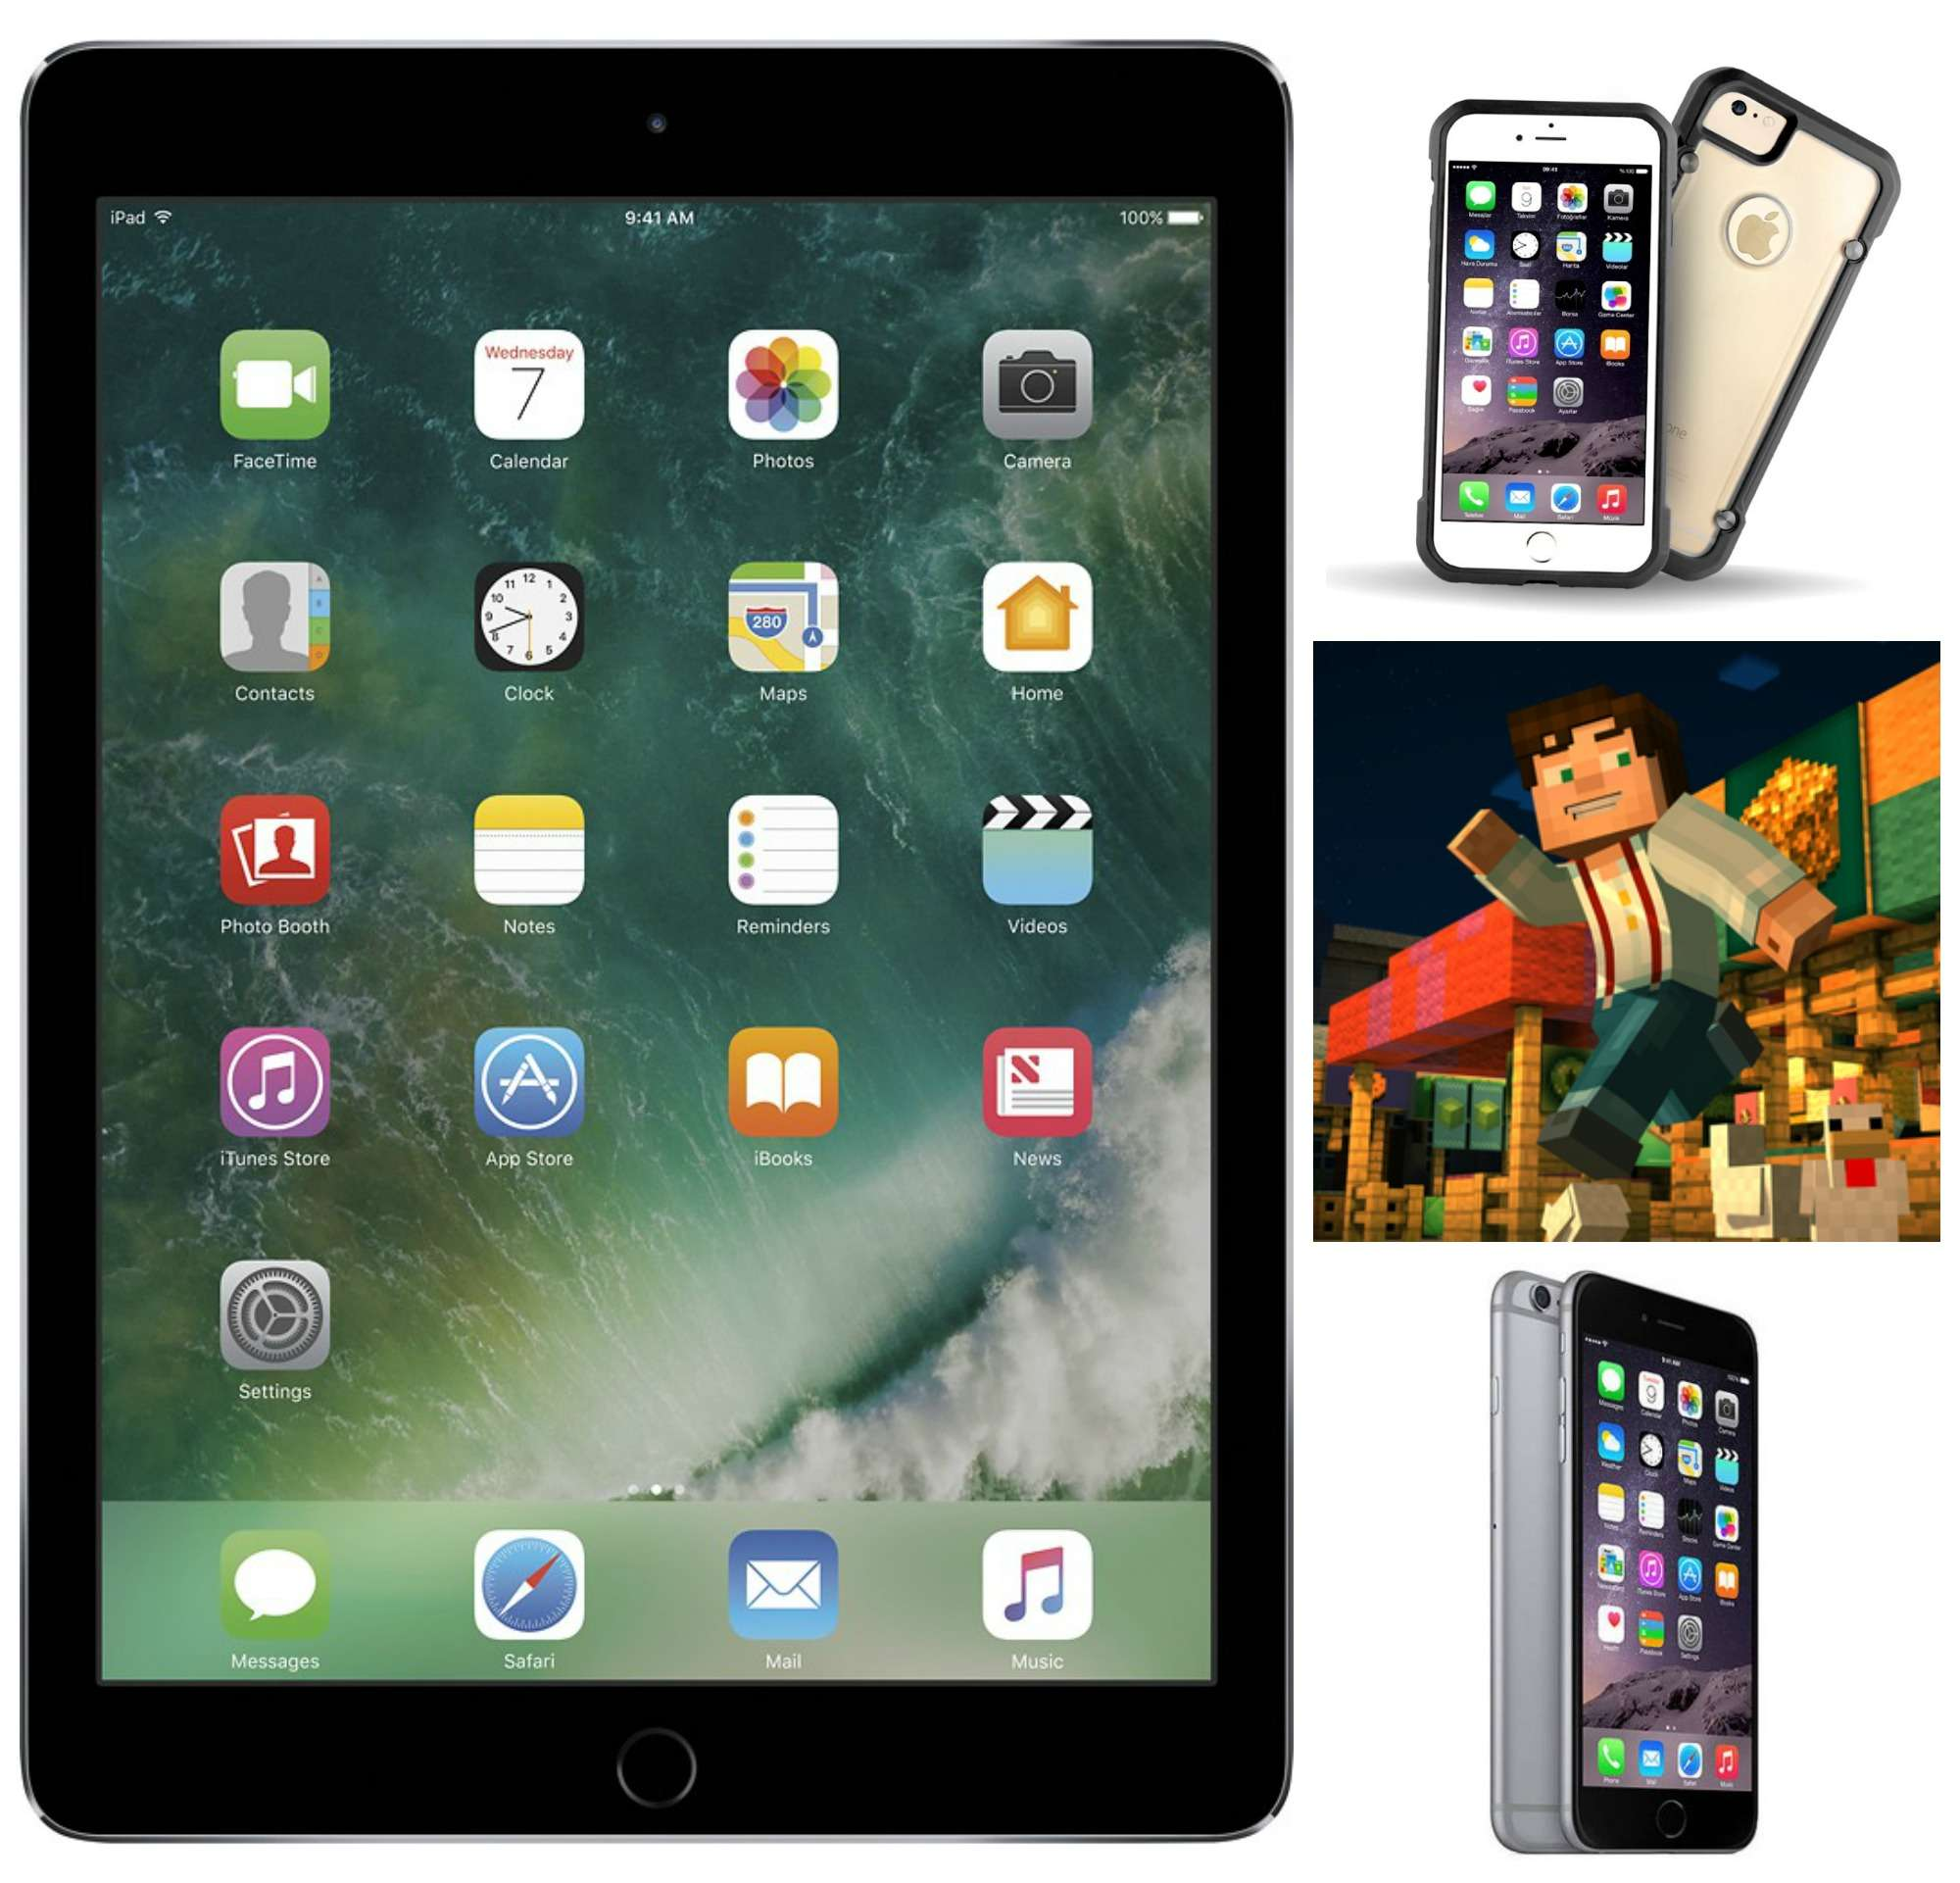 Week S Best Apple Deals Ipad Air 2 128gb For 425 Free Minecraft For Ios Cult Of Mac